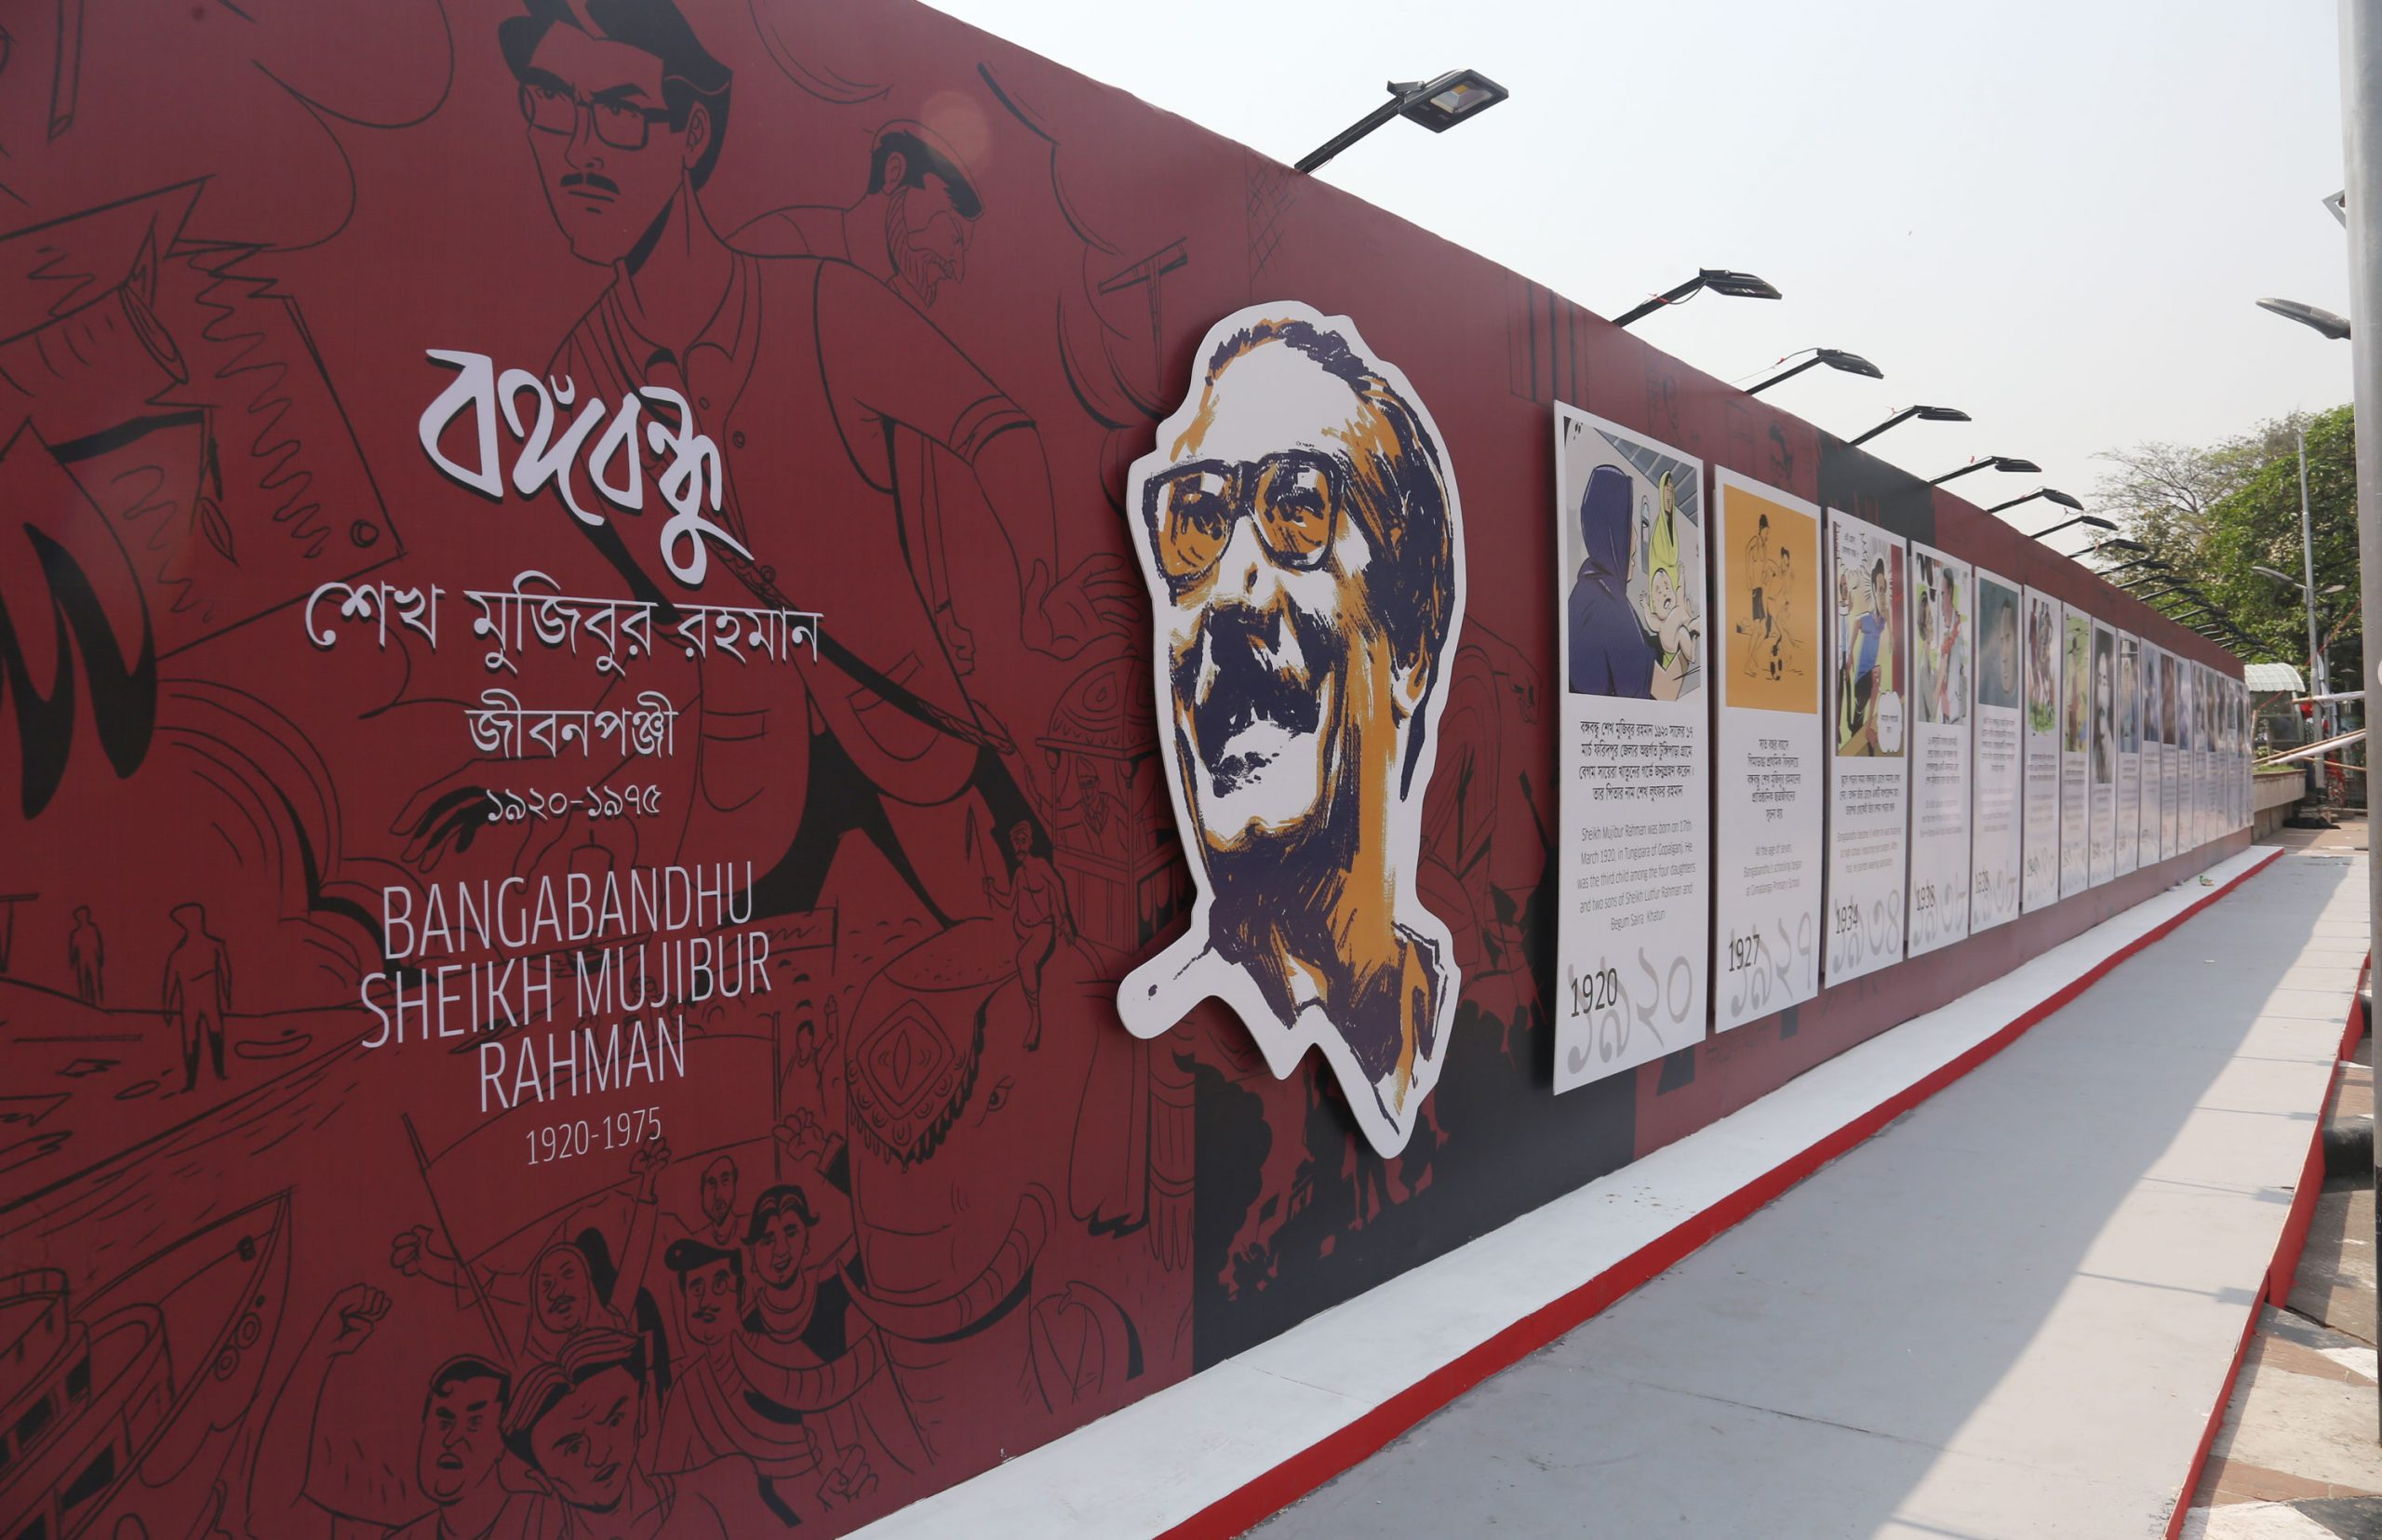 Celebrating Bangabandhu's 99th Centenary